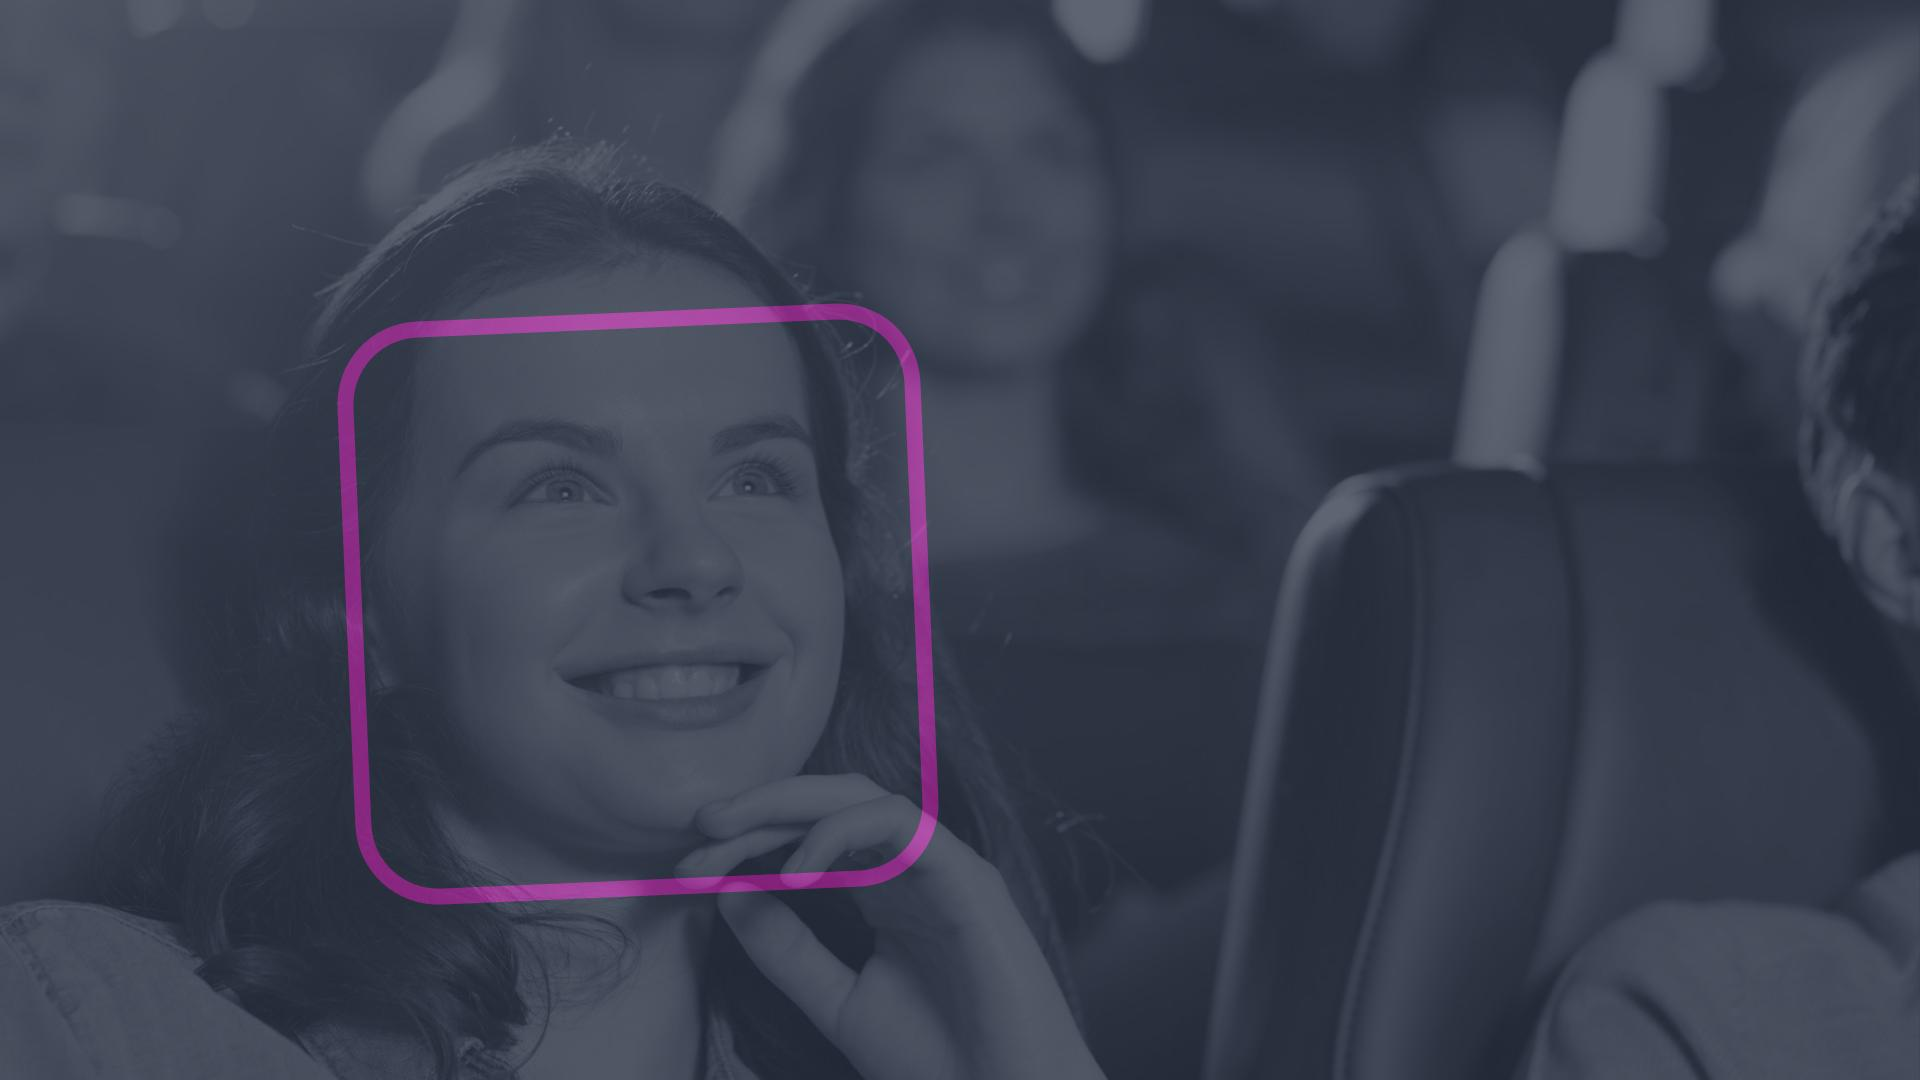 Women watching a movie, with a pink bounding box over her face